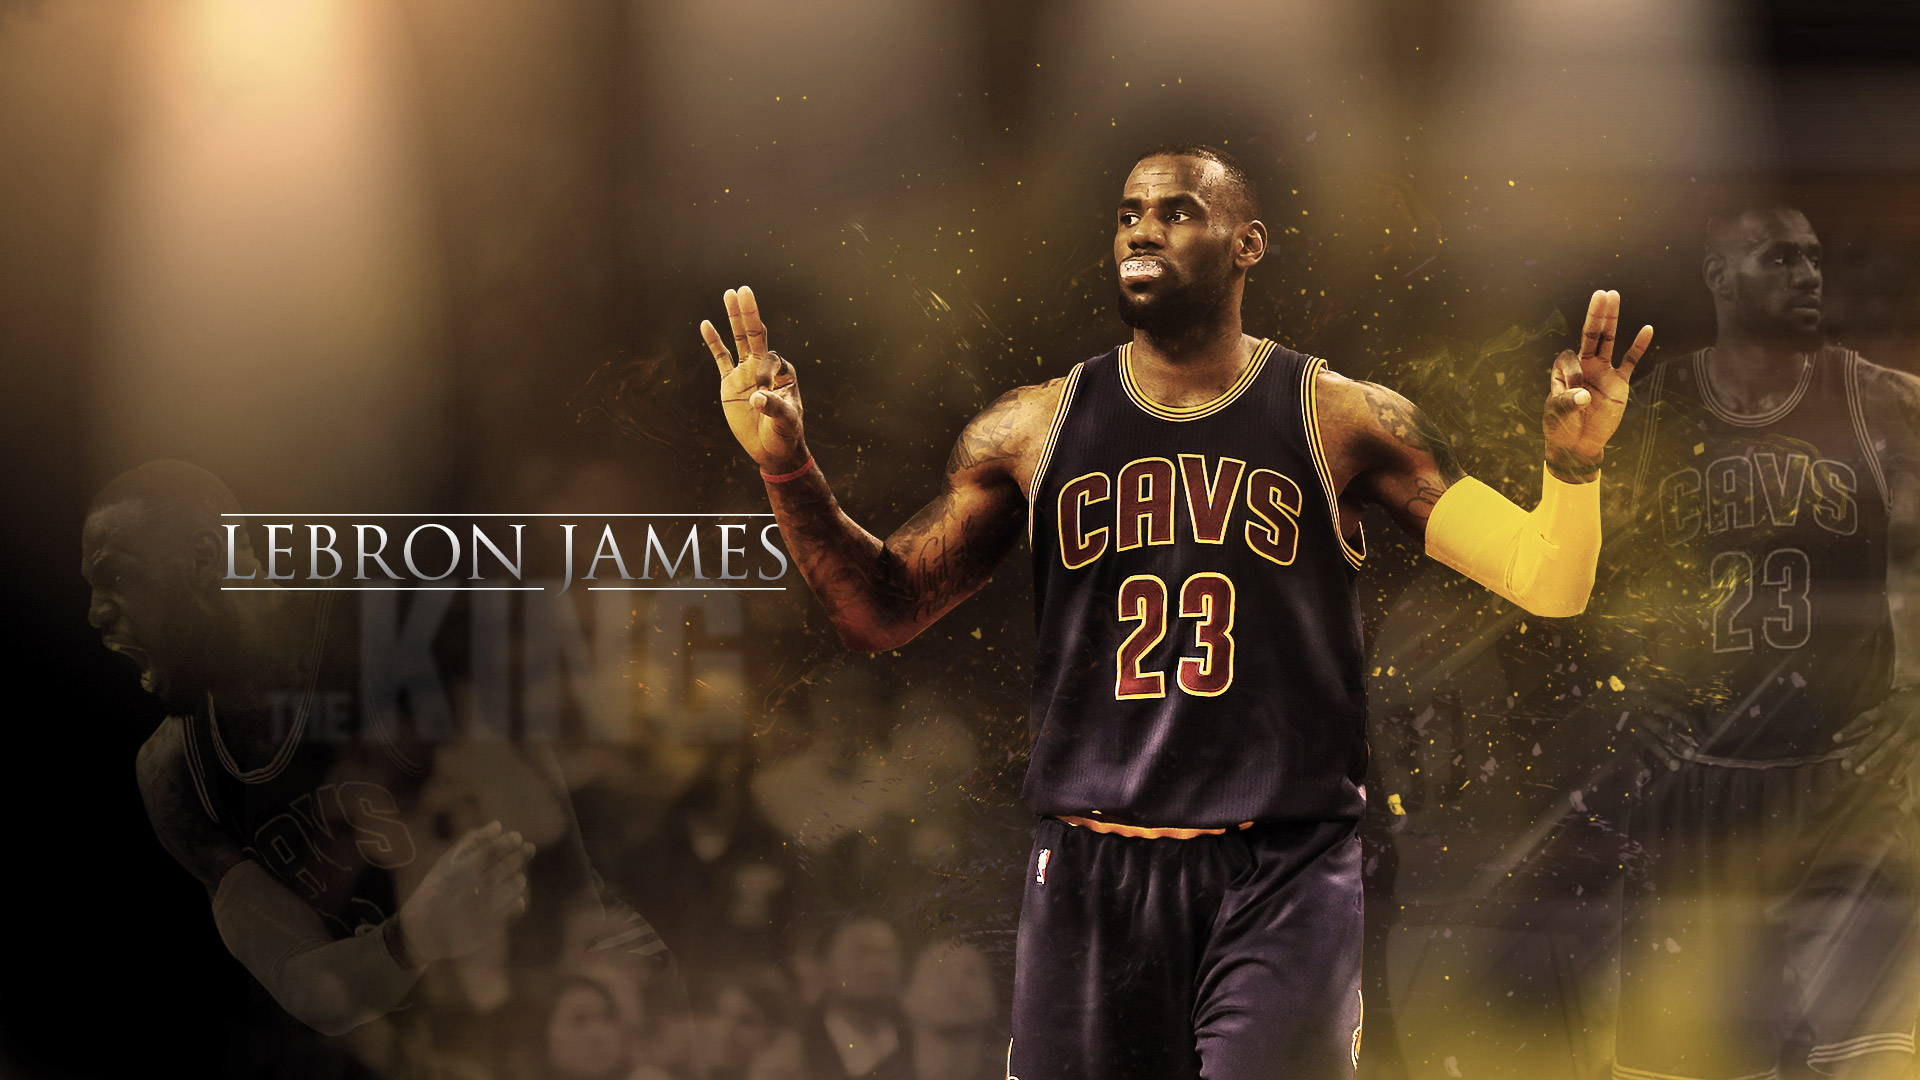 LeBron James Cavaliers 2016 1920×1080 Wallpaper  Basketball